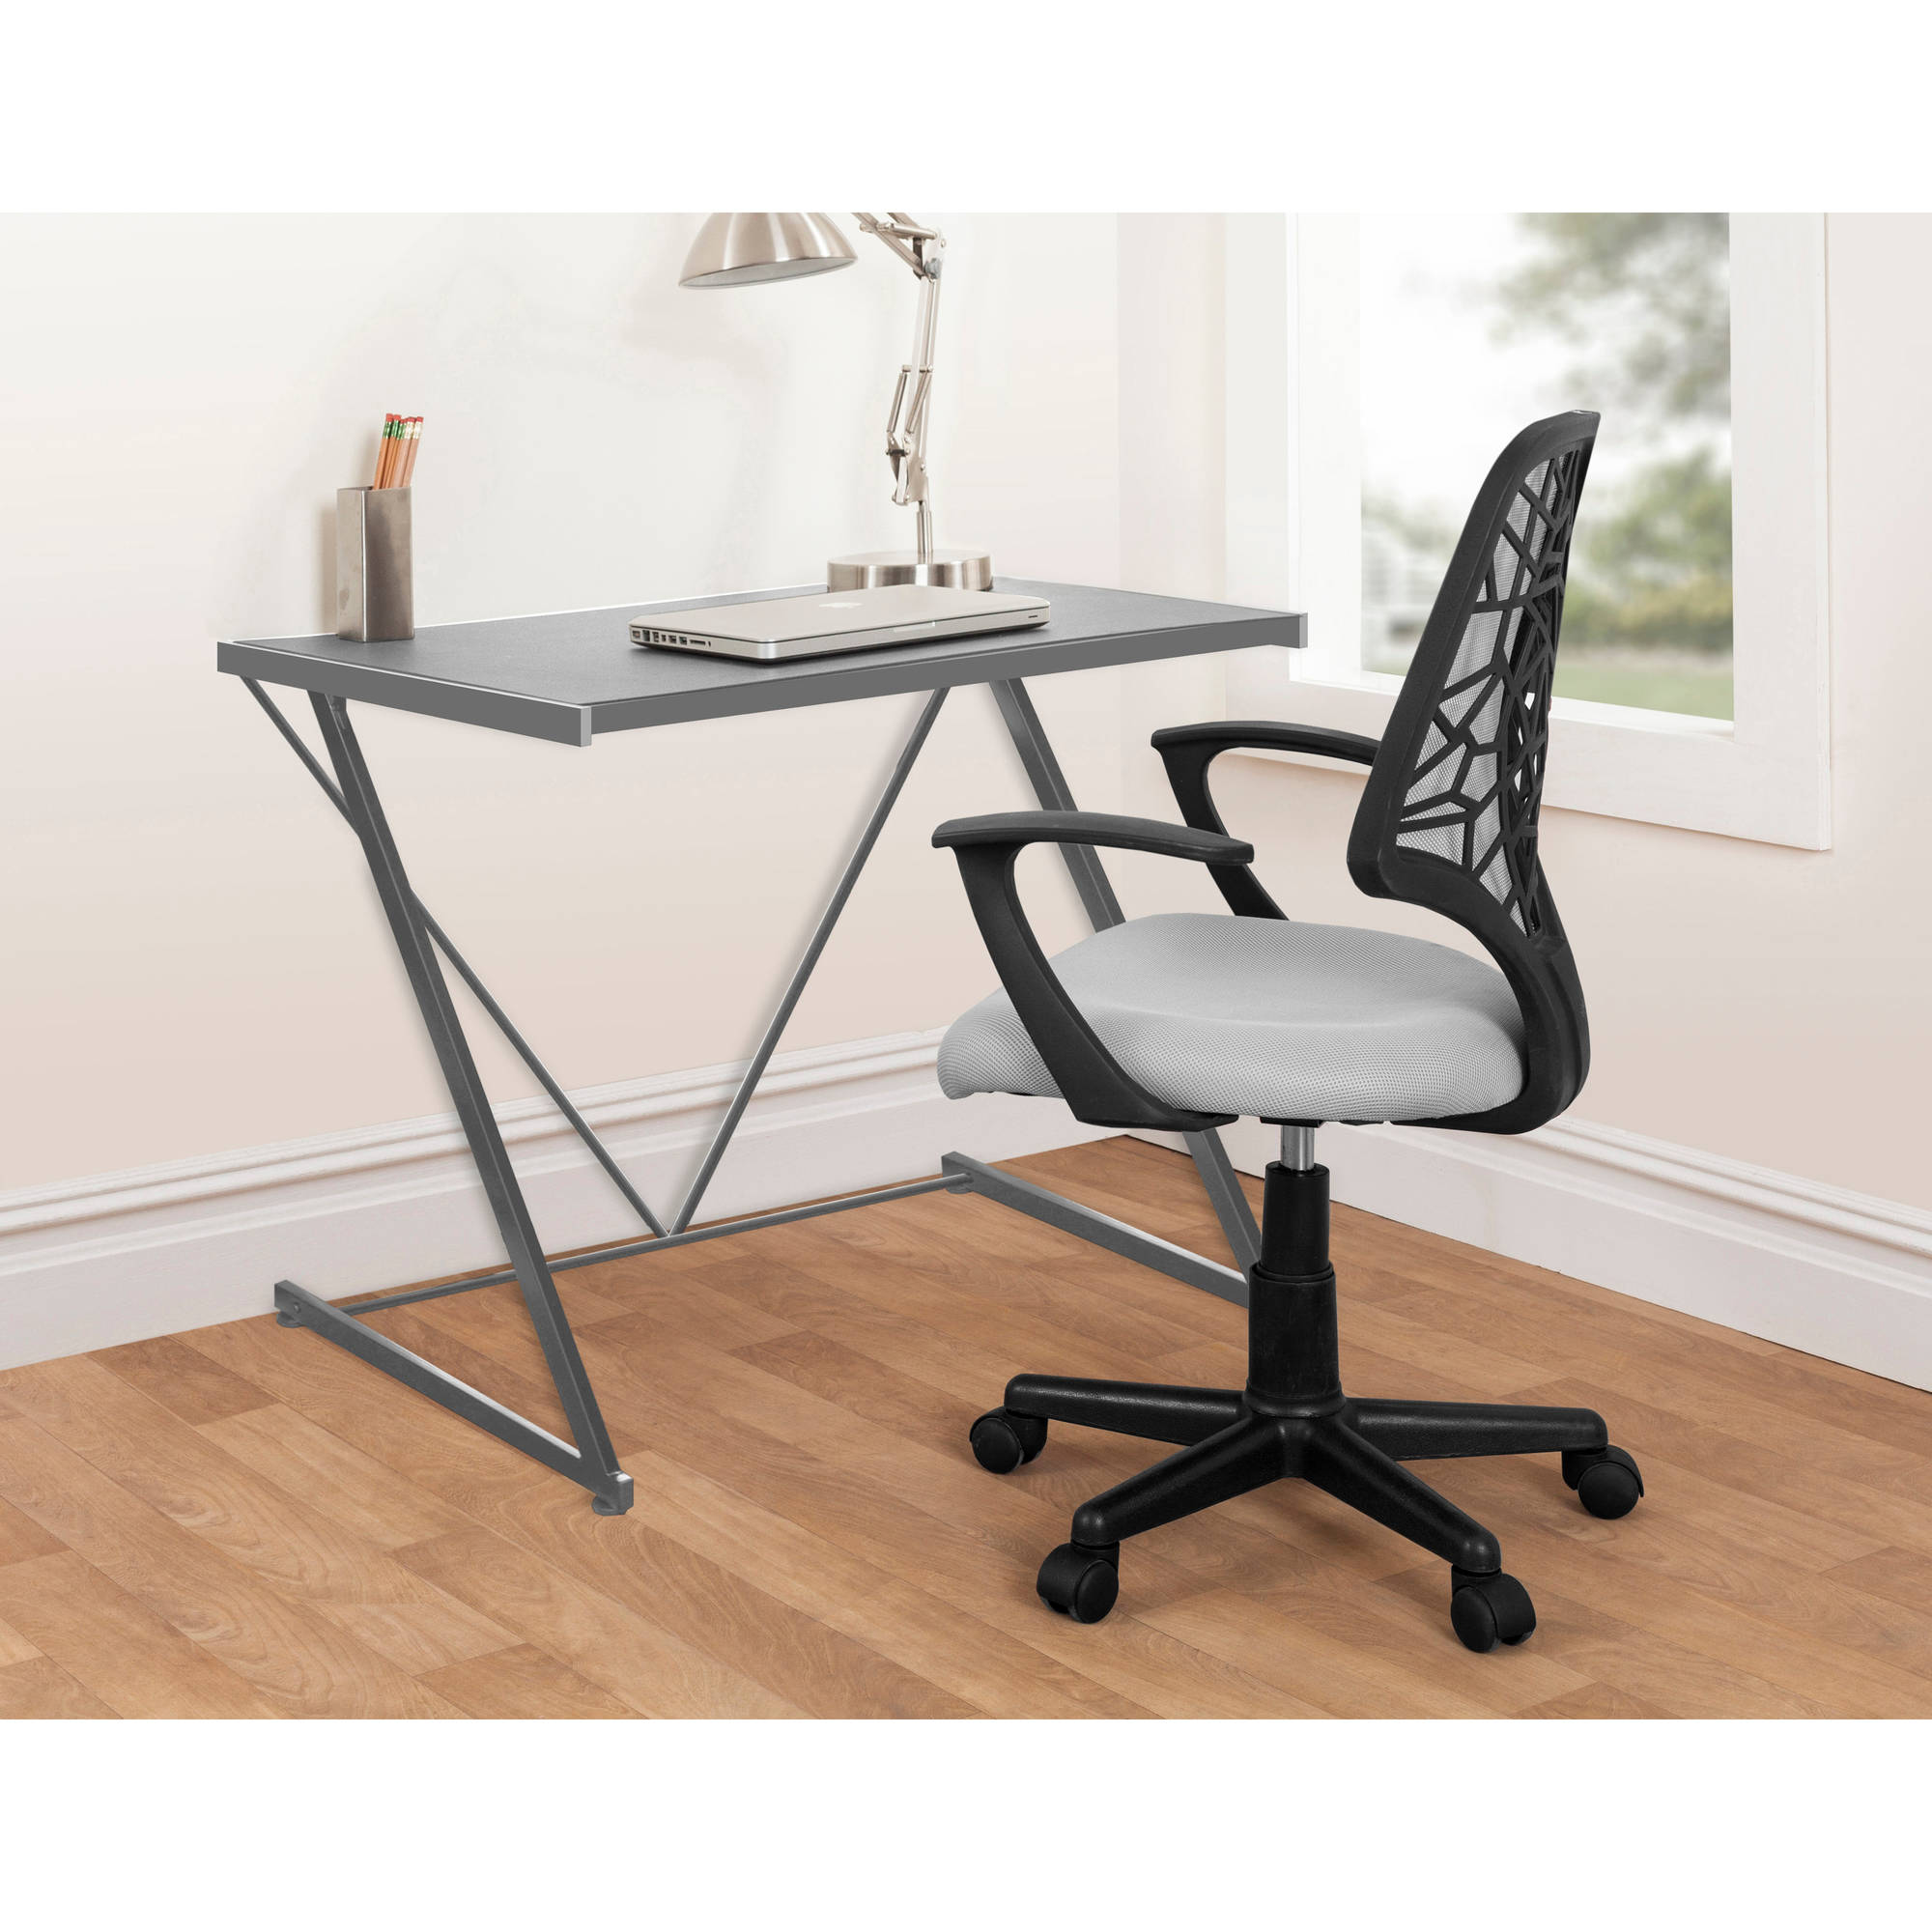 Classic Table Office Urban Shop Silver Z Shaped Student Desk